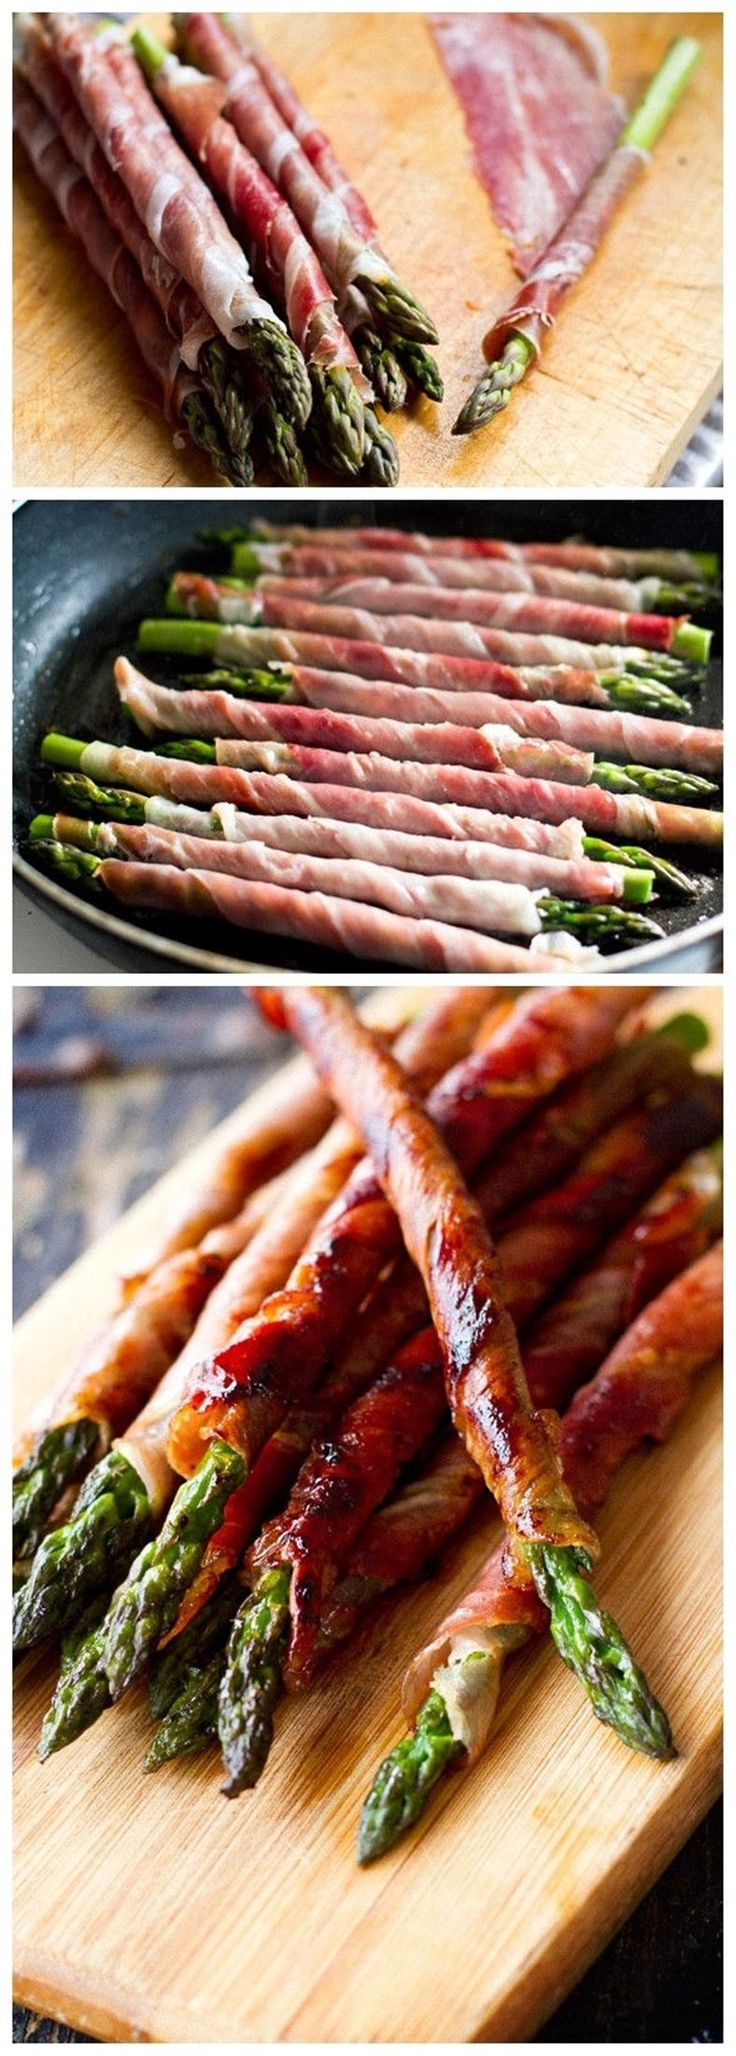 How disgusting! Why spoil a tasty asparagus spears by wrapping a piece of dead carcass around it???? So sick